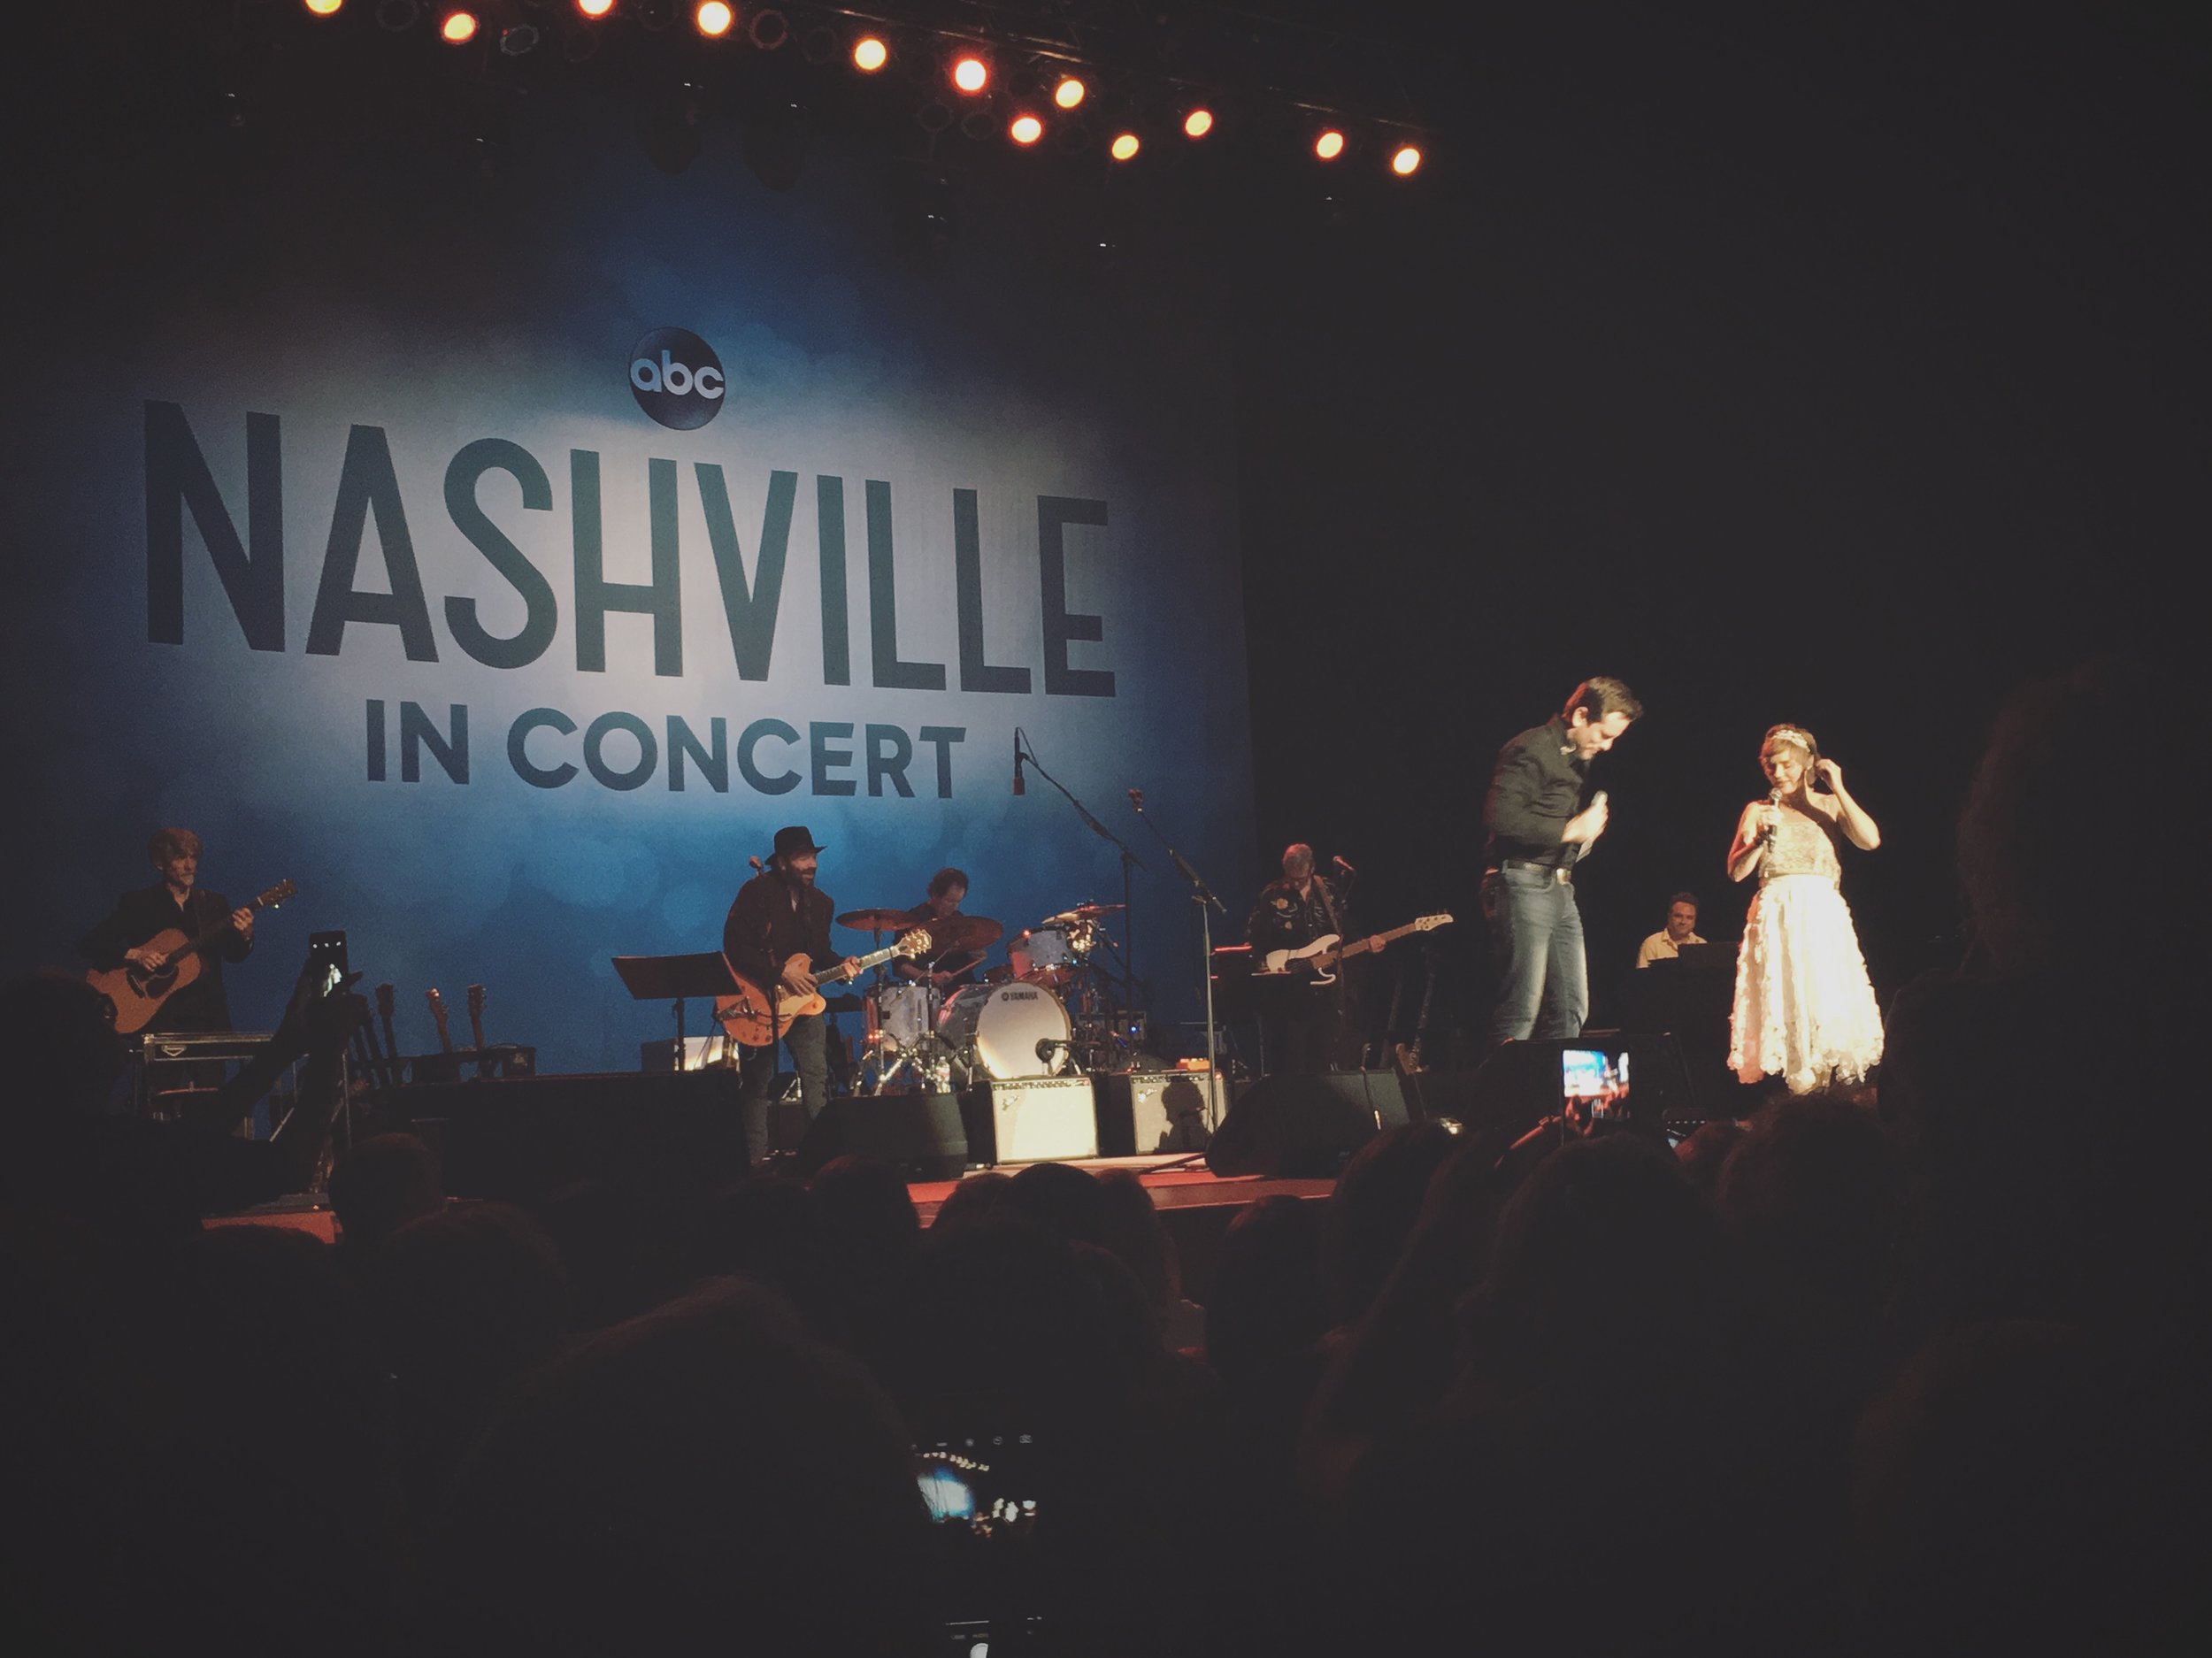 Charles Esten (who plays Deacon Claybourne) and Clare Bowen (who plays Scarlett O'Connor) sing and dance on stage during a duet.   (Photo credit: Reagan Fleming)